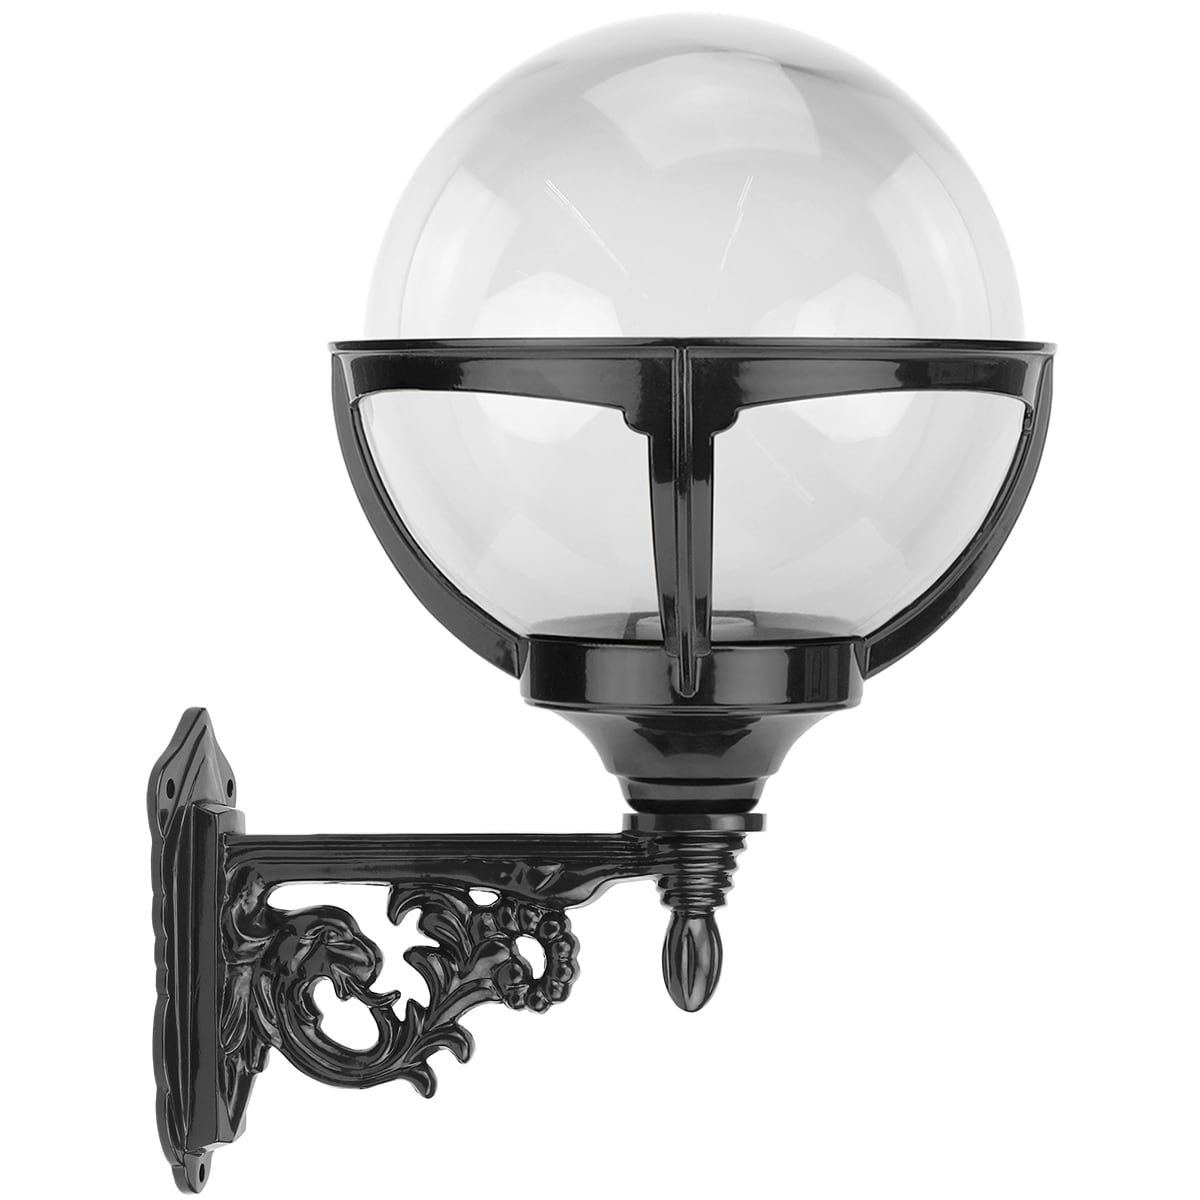 Outdoor Lamps Country Style Retro Sphere lamp clear globe Hoogwoud - 45 cm